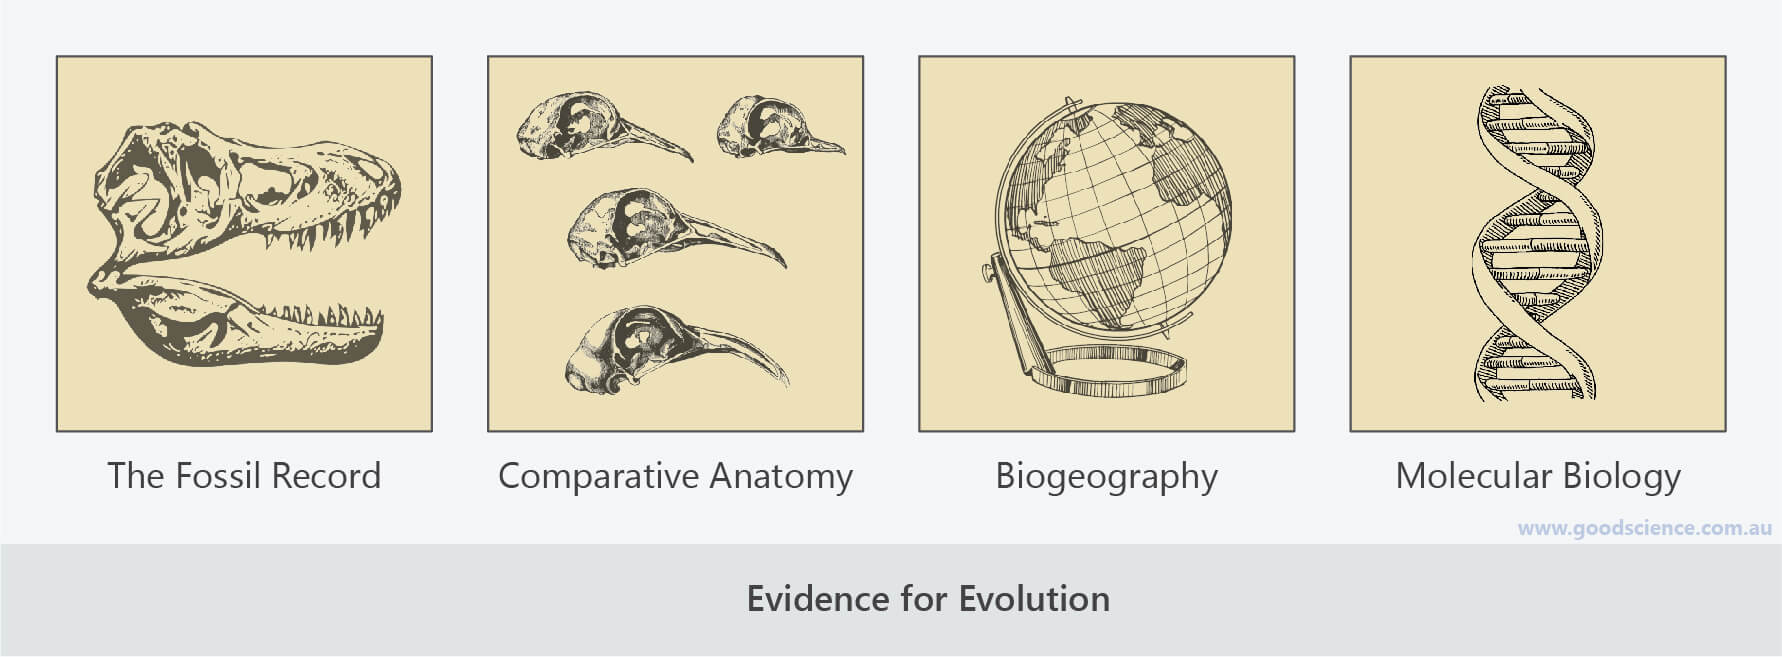 evidence for evolution fossil record comparative anatomy biogeography molecular biology